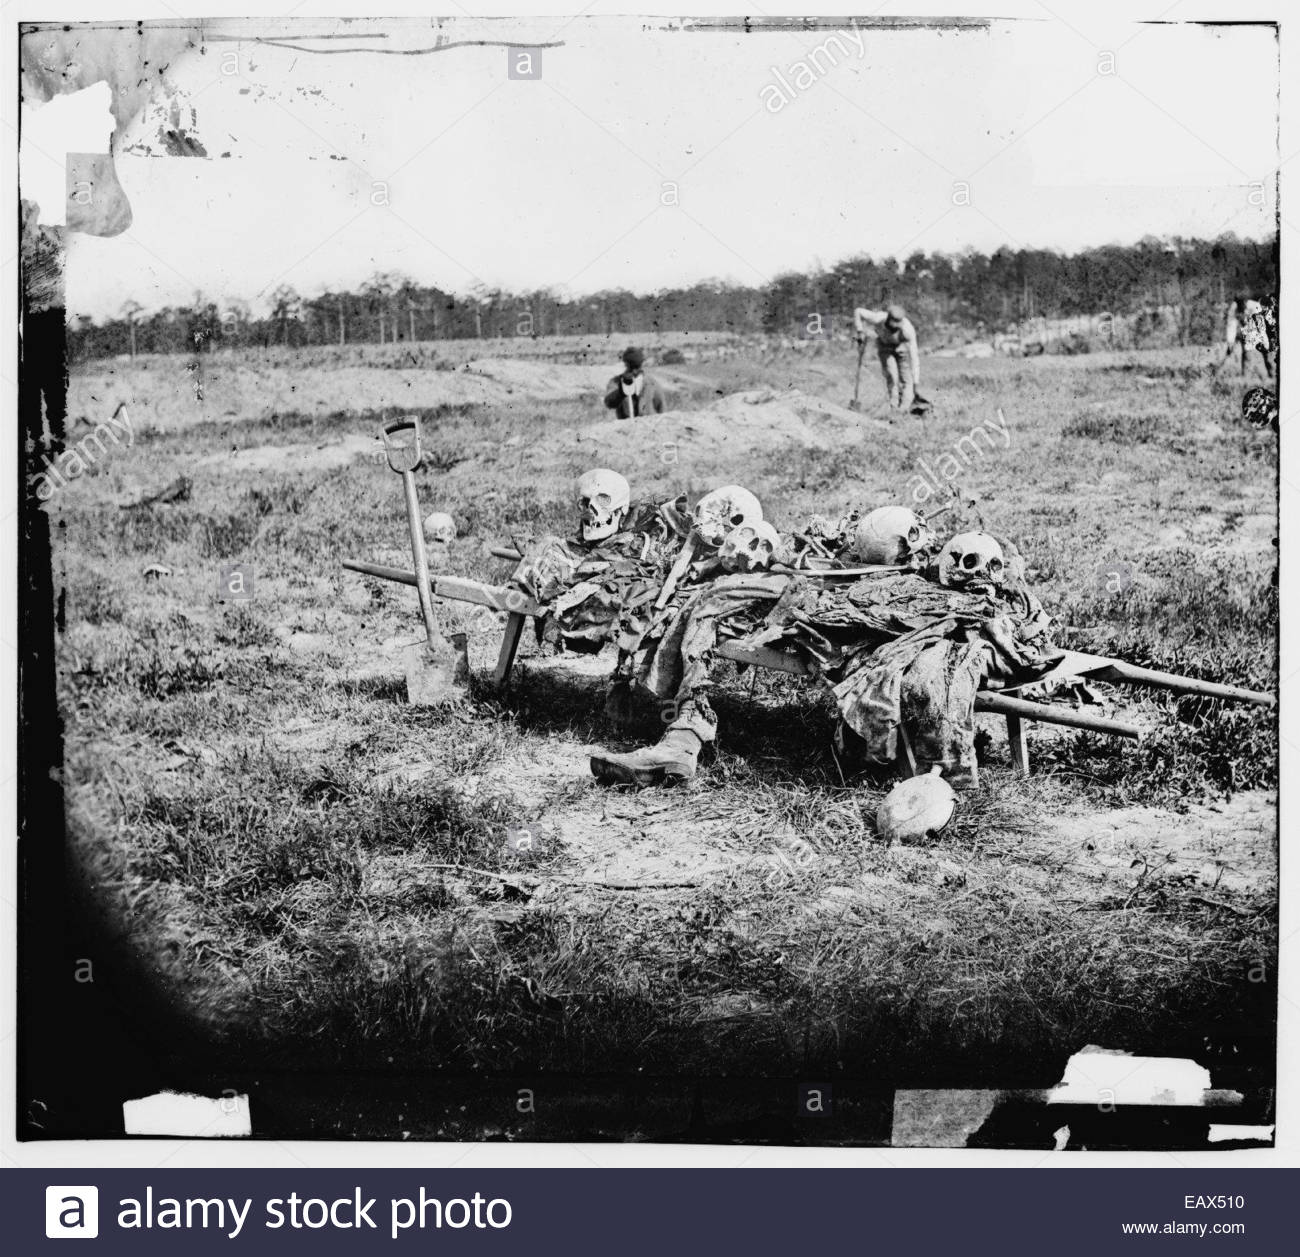 An American Civil War photograph of men collecting remains of dead